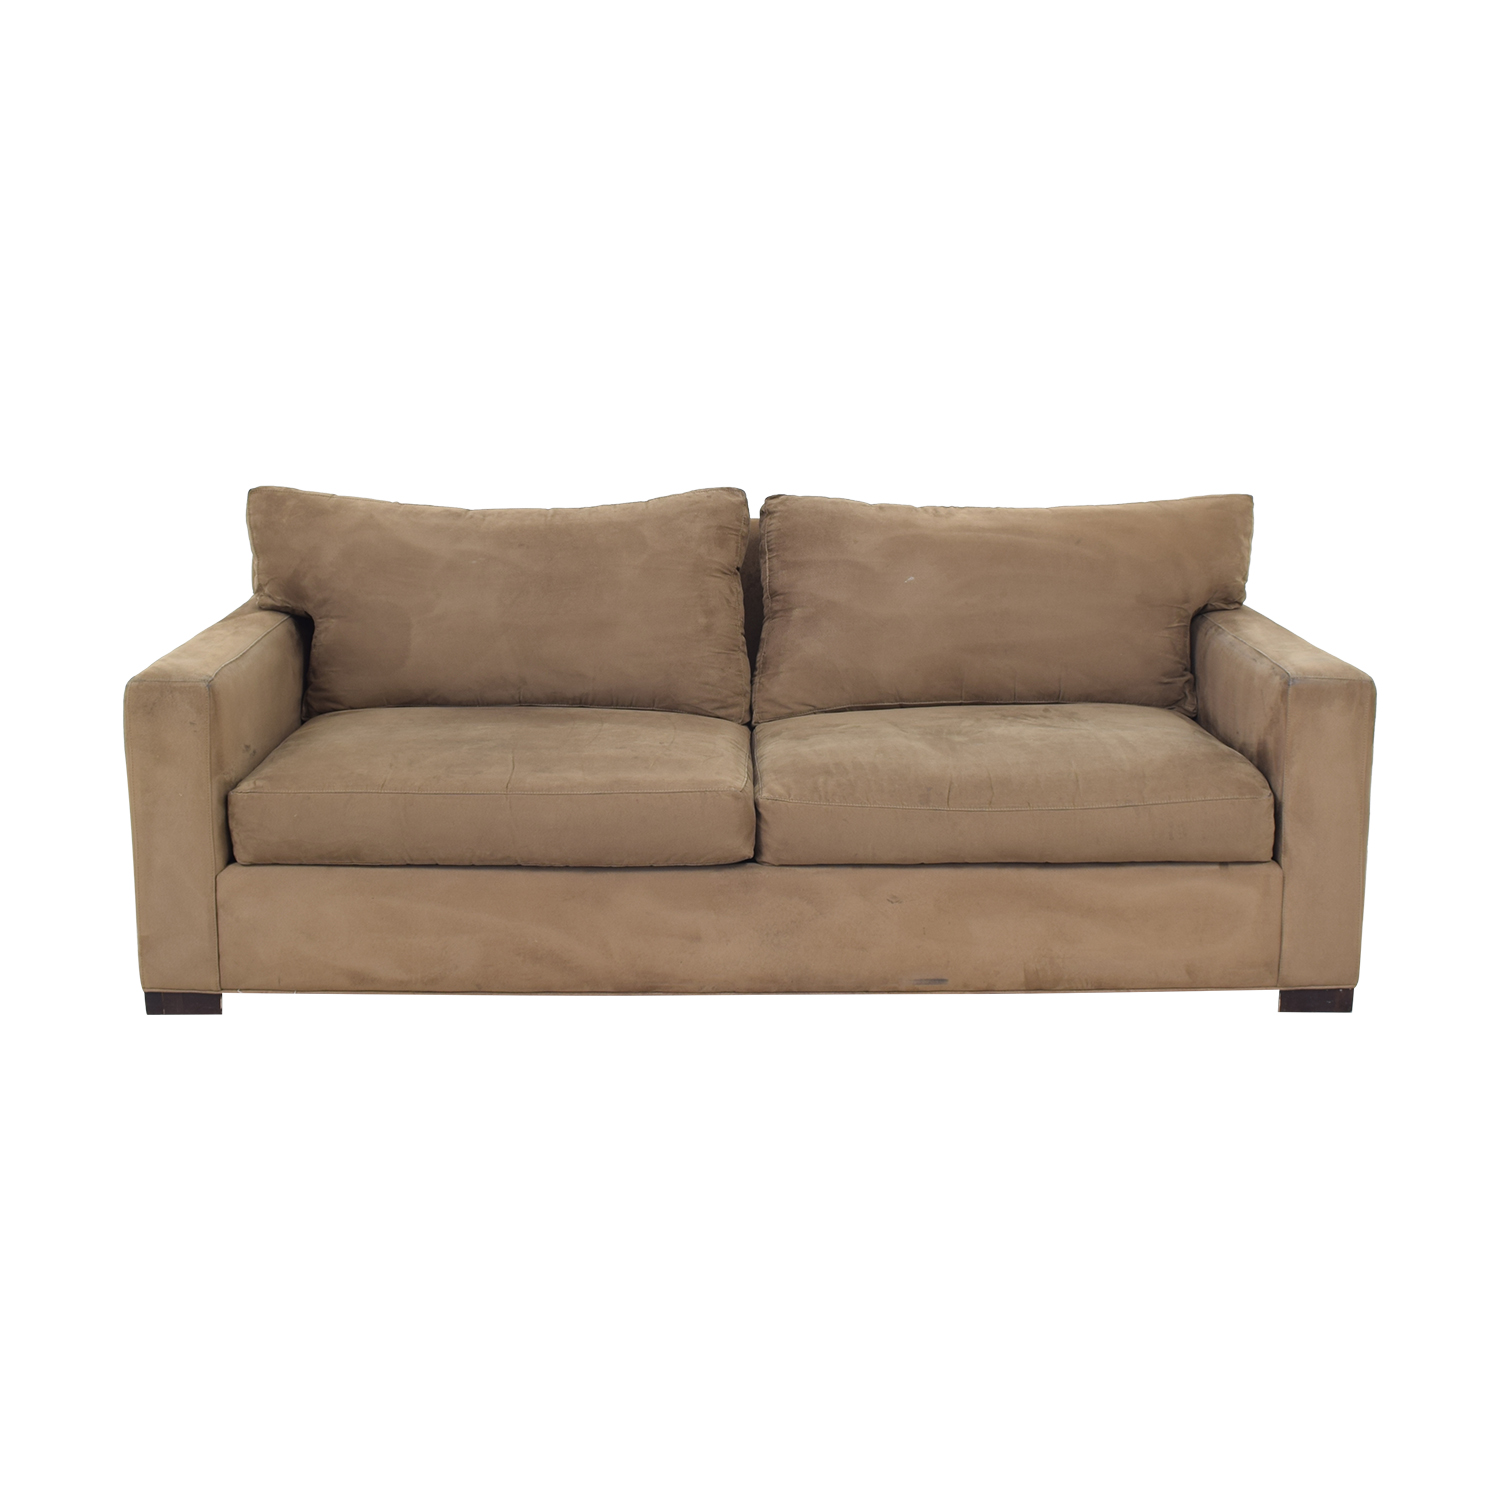 Crate & Barrel Crate & Barrel Axis 2-Seat Sofa ct